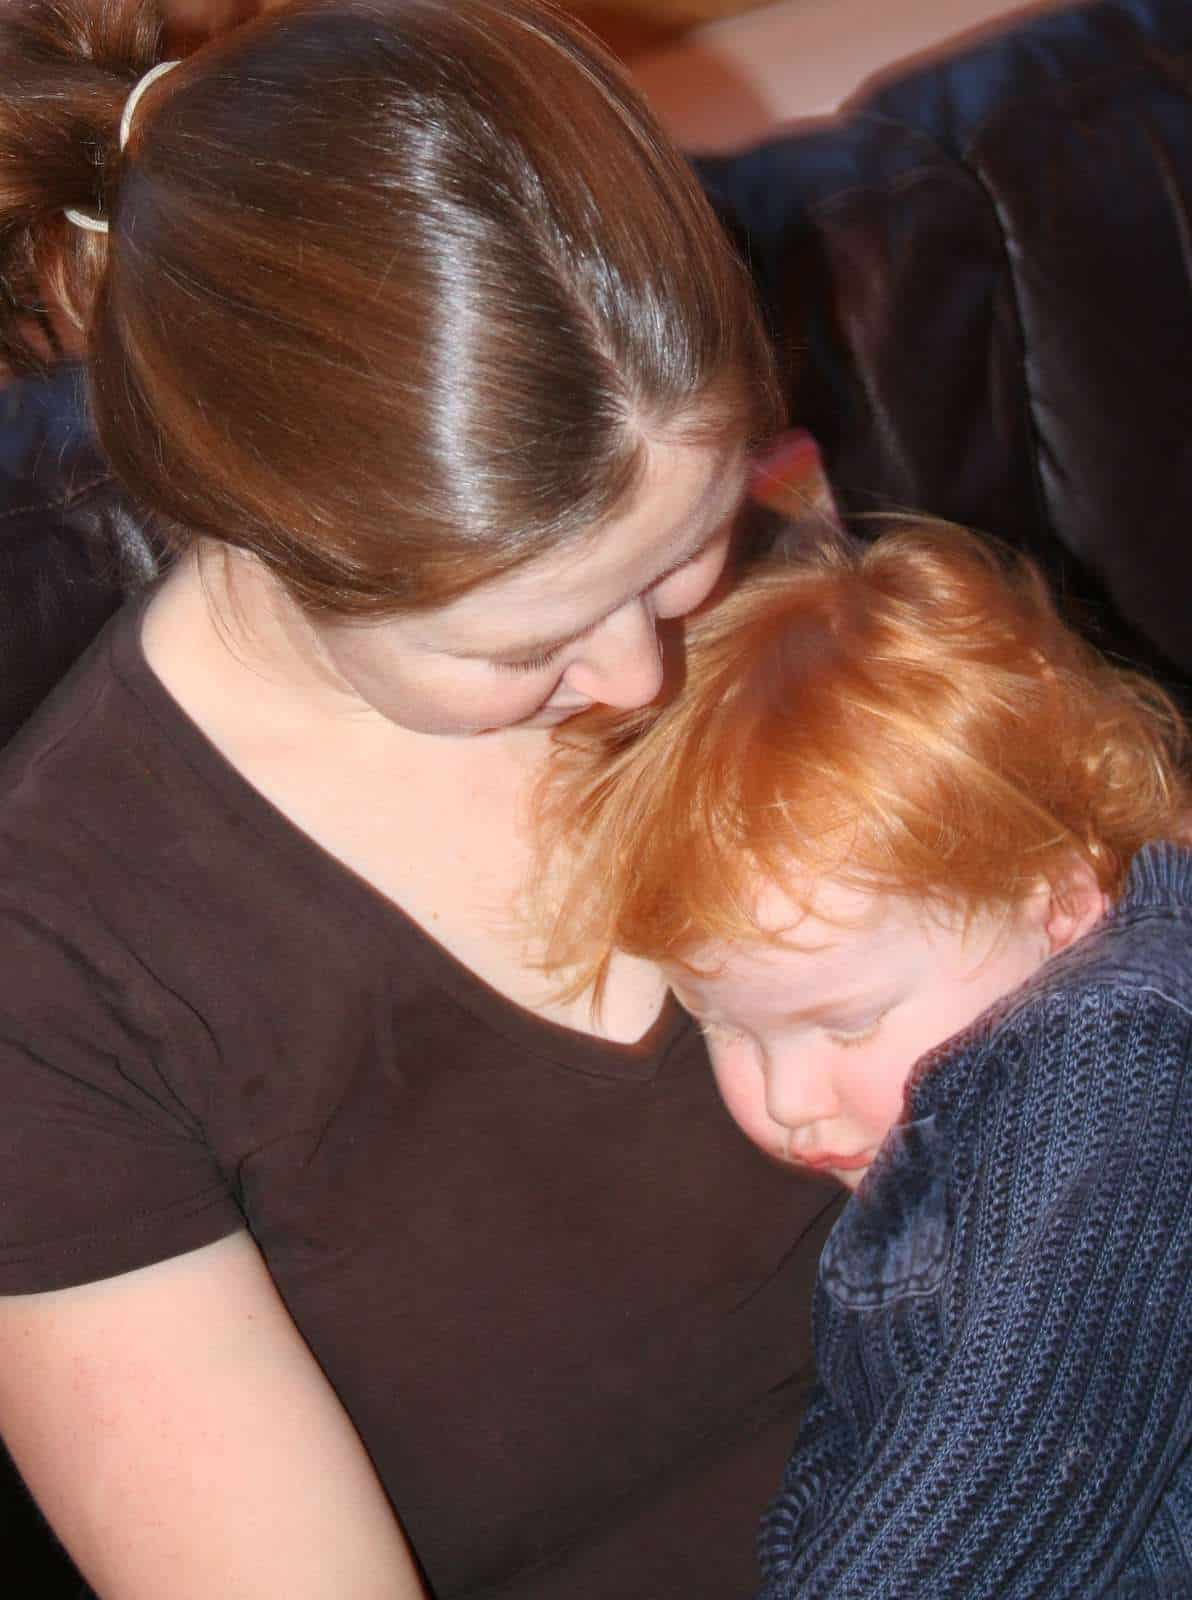 Advocate Sleeptraining Techniques In Which Babies Or Children Are Left  To Cry For Long Periods These Methods For Training Young Babies To Fall  Asleep